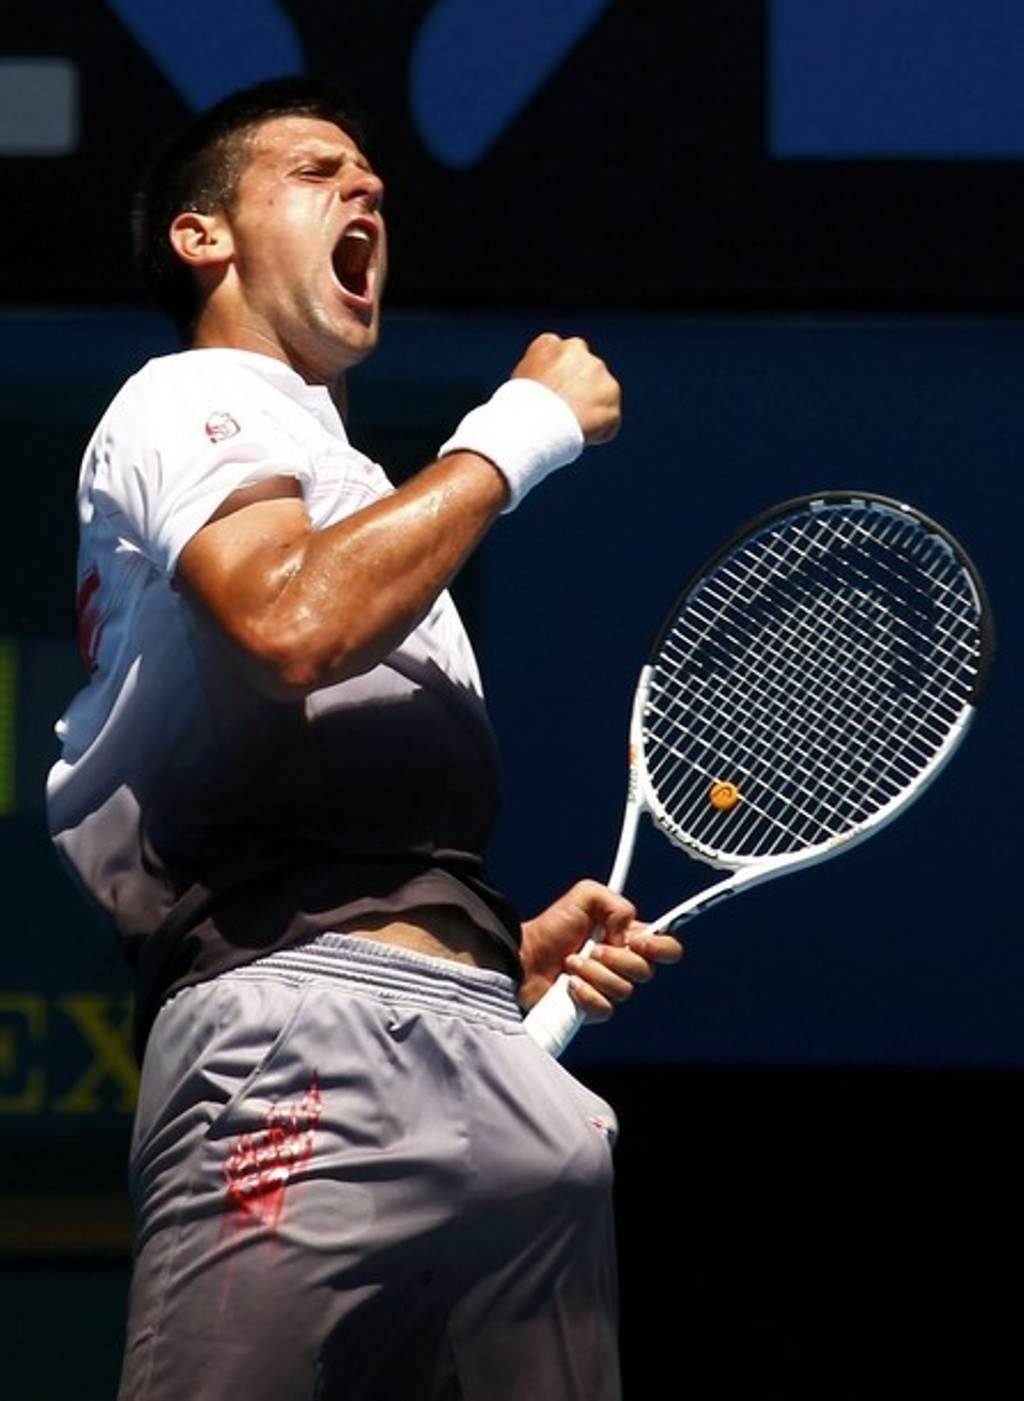 Novak Djokovic djokovic big bulge !!!